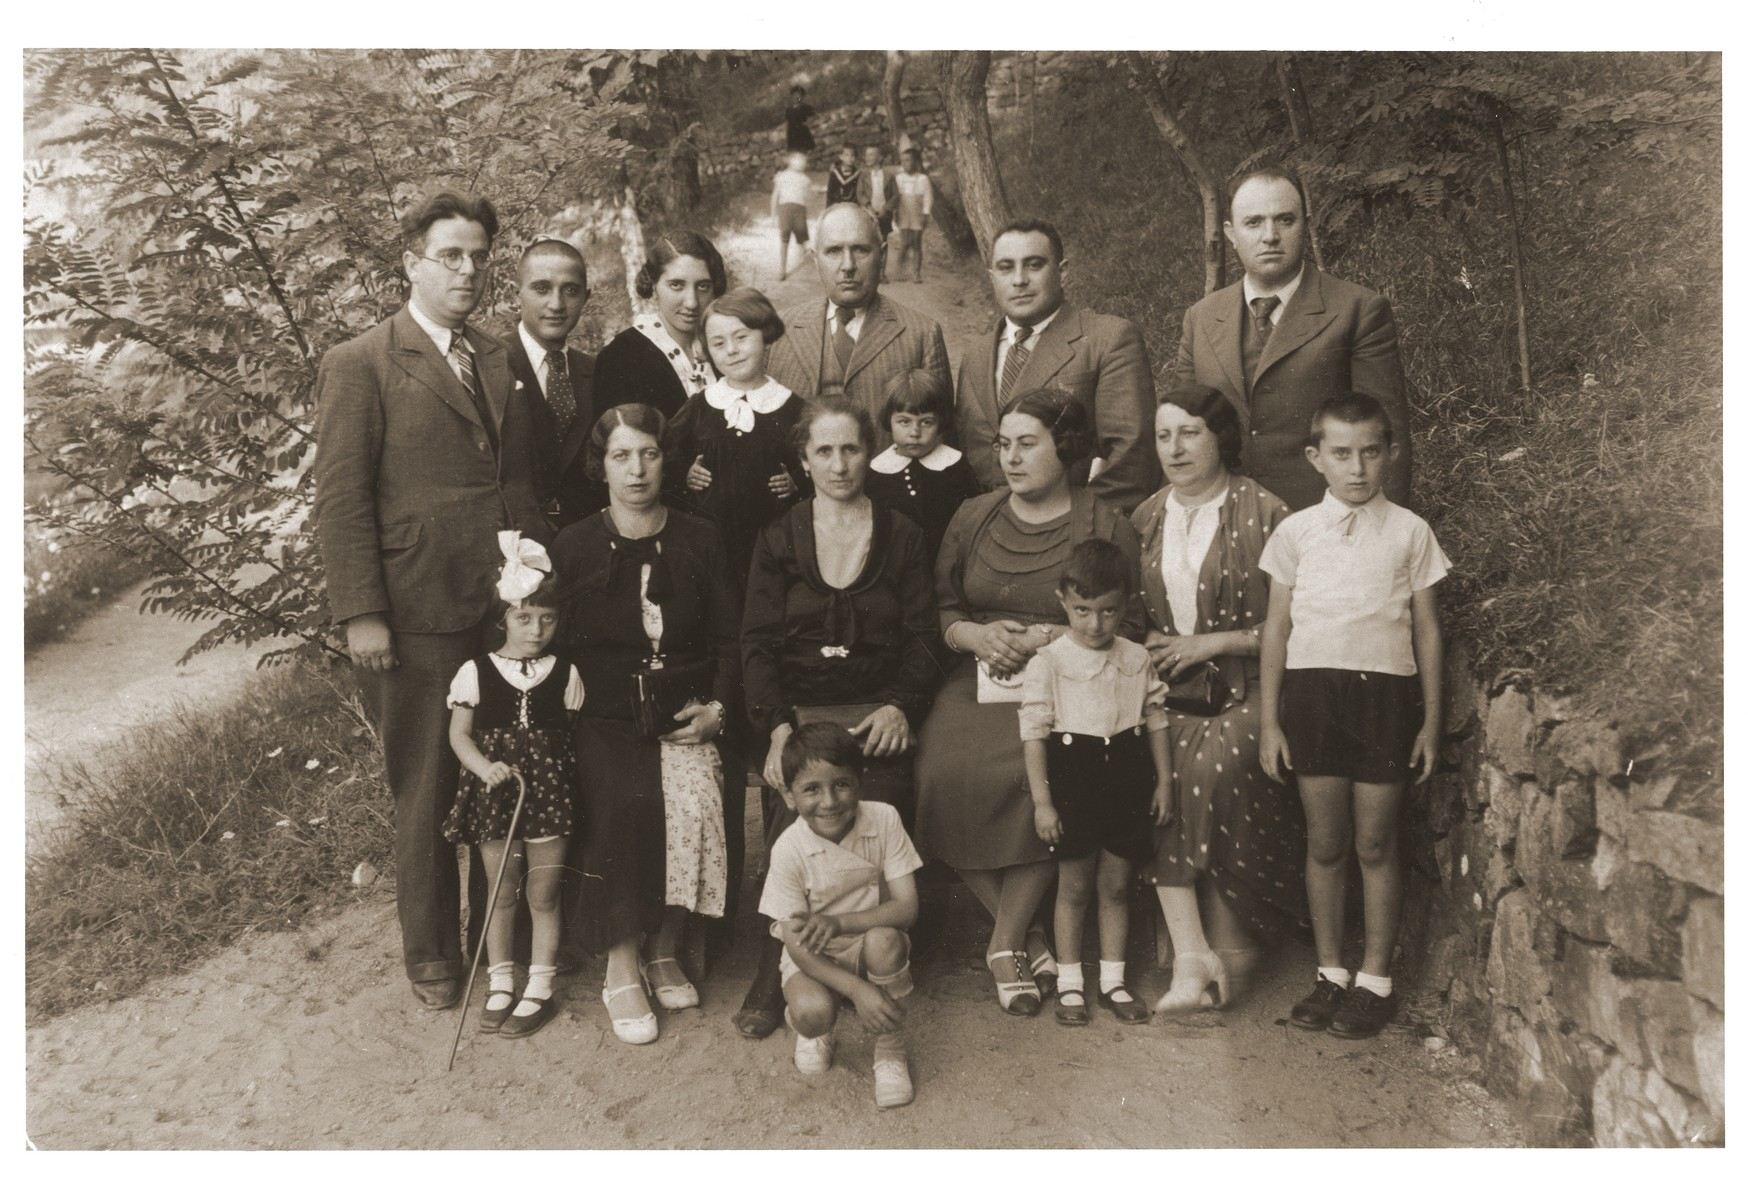 Group portrait of a Jewish family on vacation at Vranjska Banja.    Among those pictured are Jacques Nahmias (standing in back, second from the left), Rachel (nee Nahmias) Kornberg, (standing in back, third from the left), Avram Nahmias (standing in back, third from the right), Mato (nee Franco) Nahmias (seated, second from the left), and Victor Nahmias (front, kneeling).